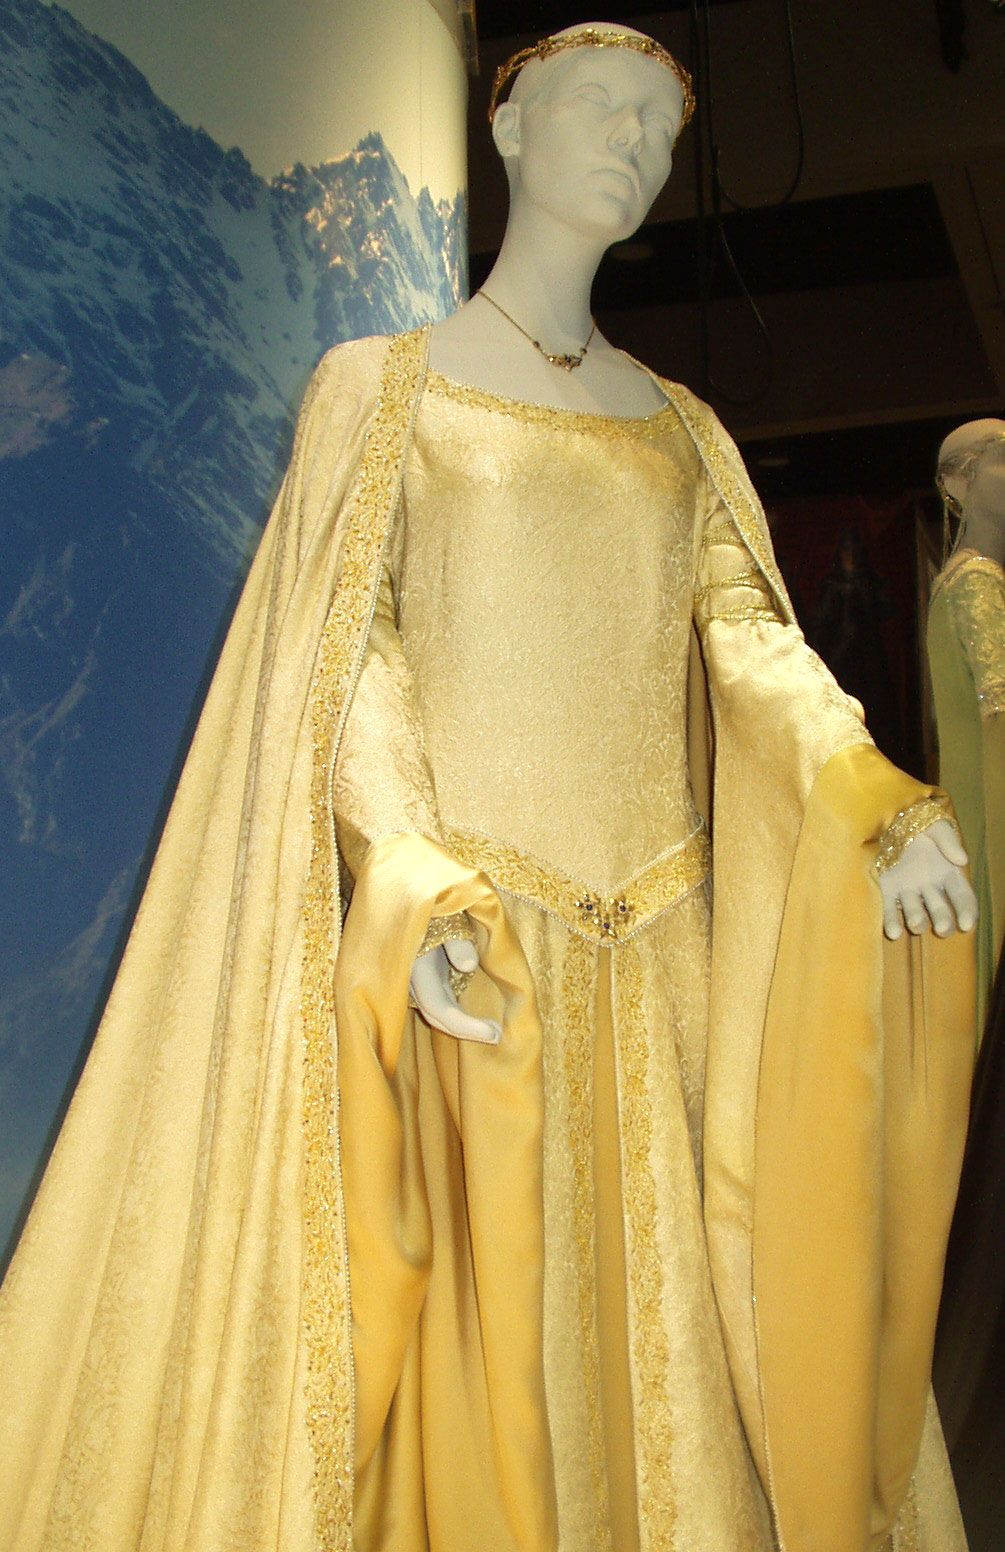 The Lord of the Rings: The Return of the King (2003) Costume Design by Ngila Dickson & Richard Taylor